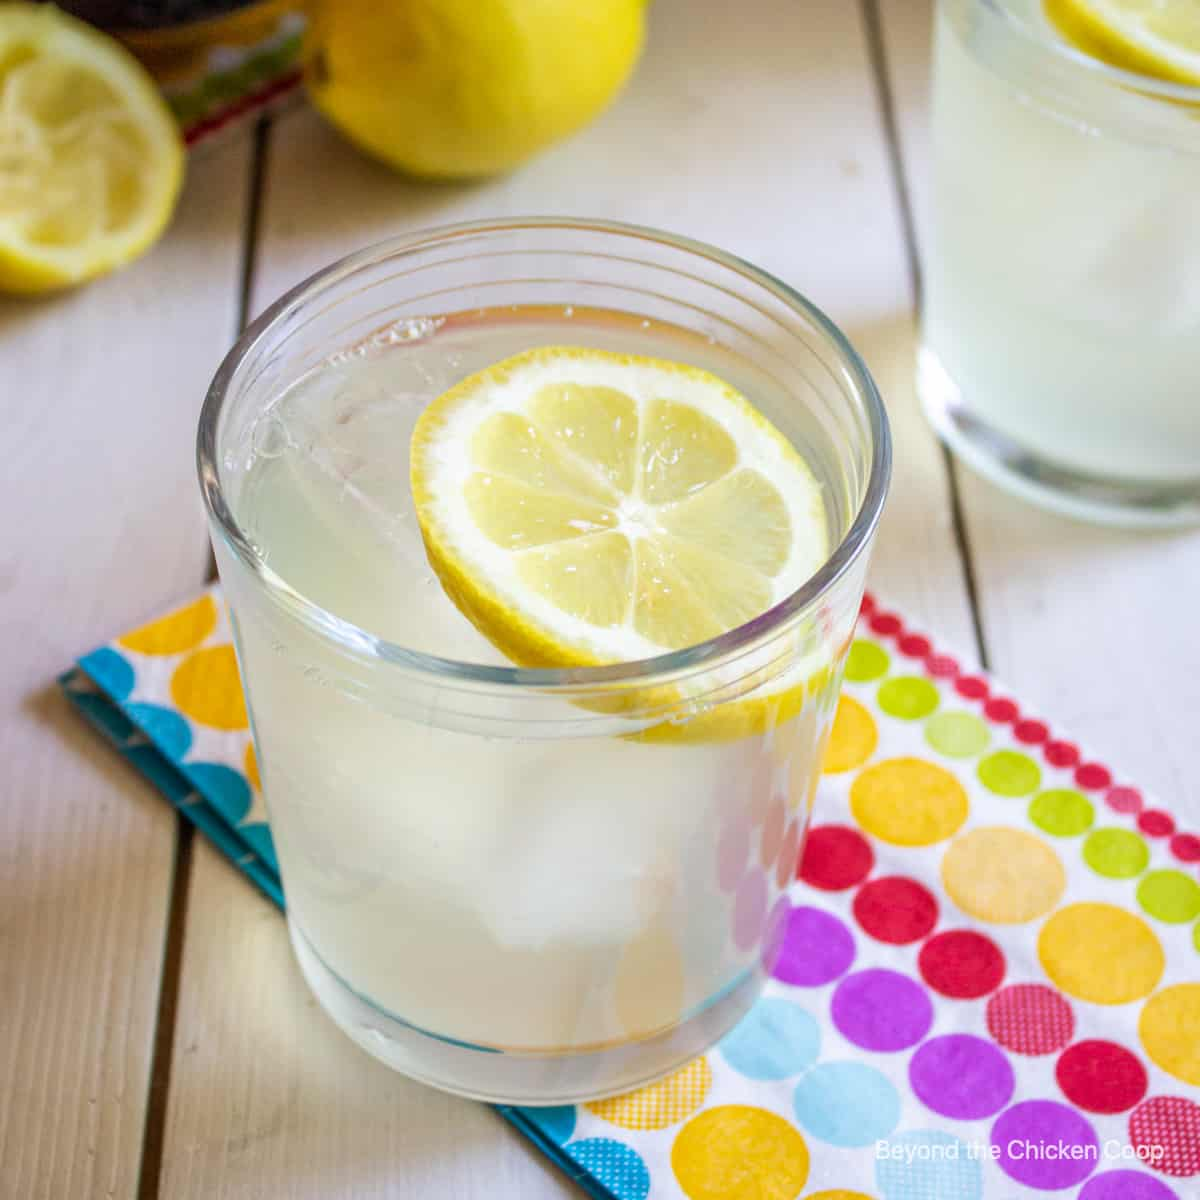 A glass filled with lemonade and a lemon slice.